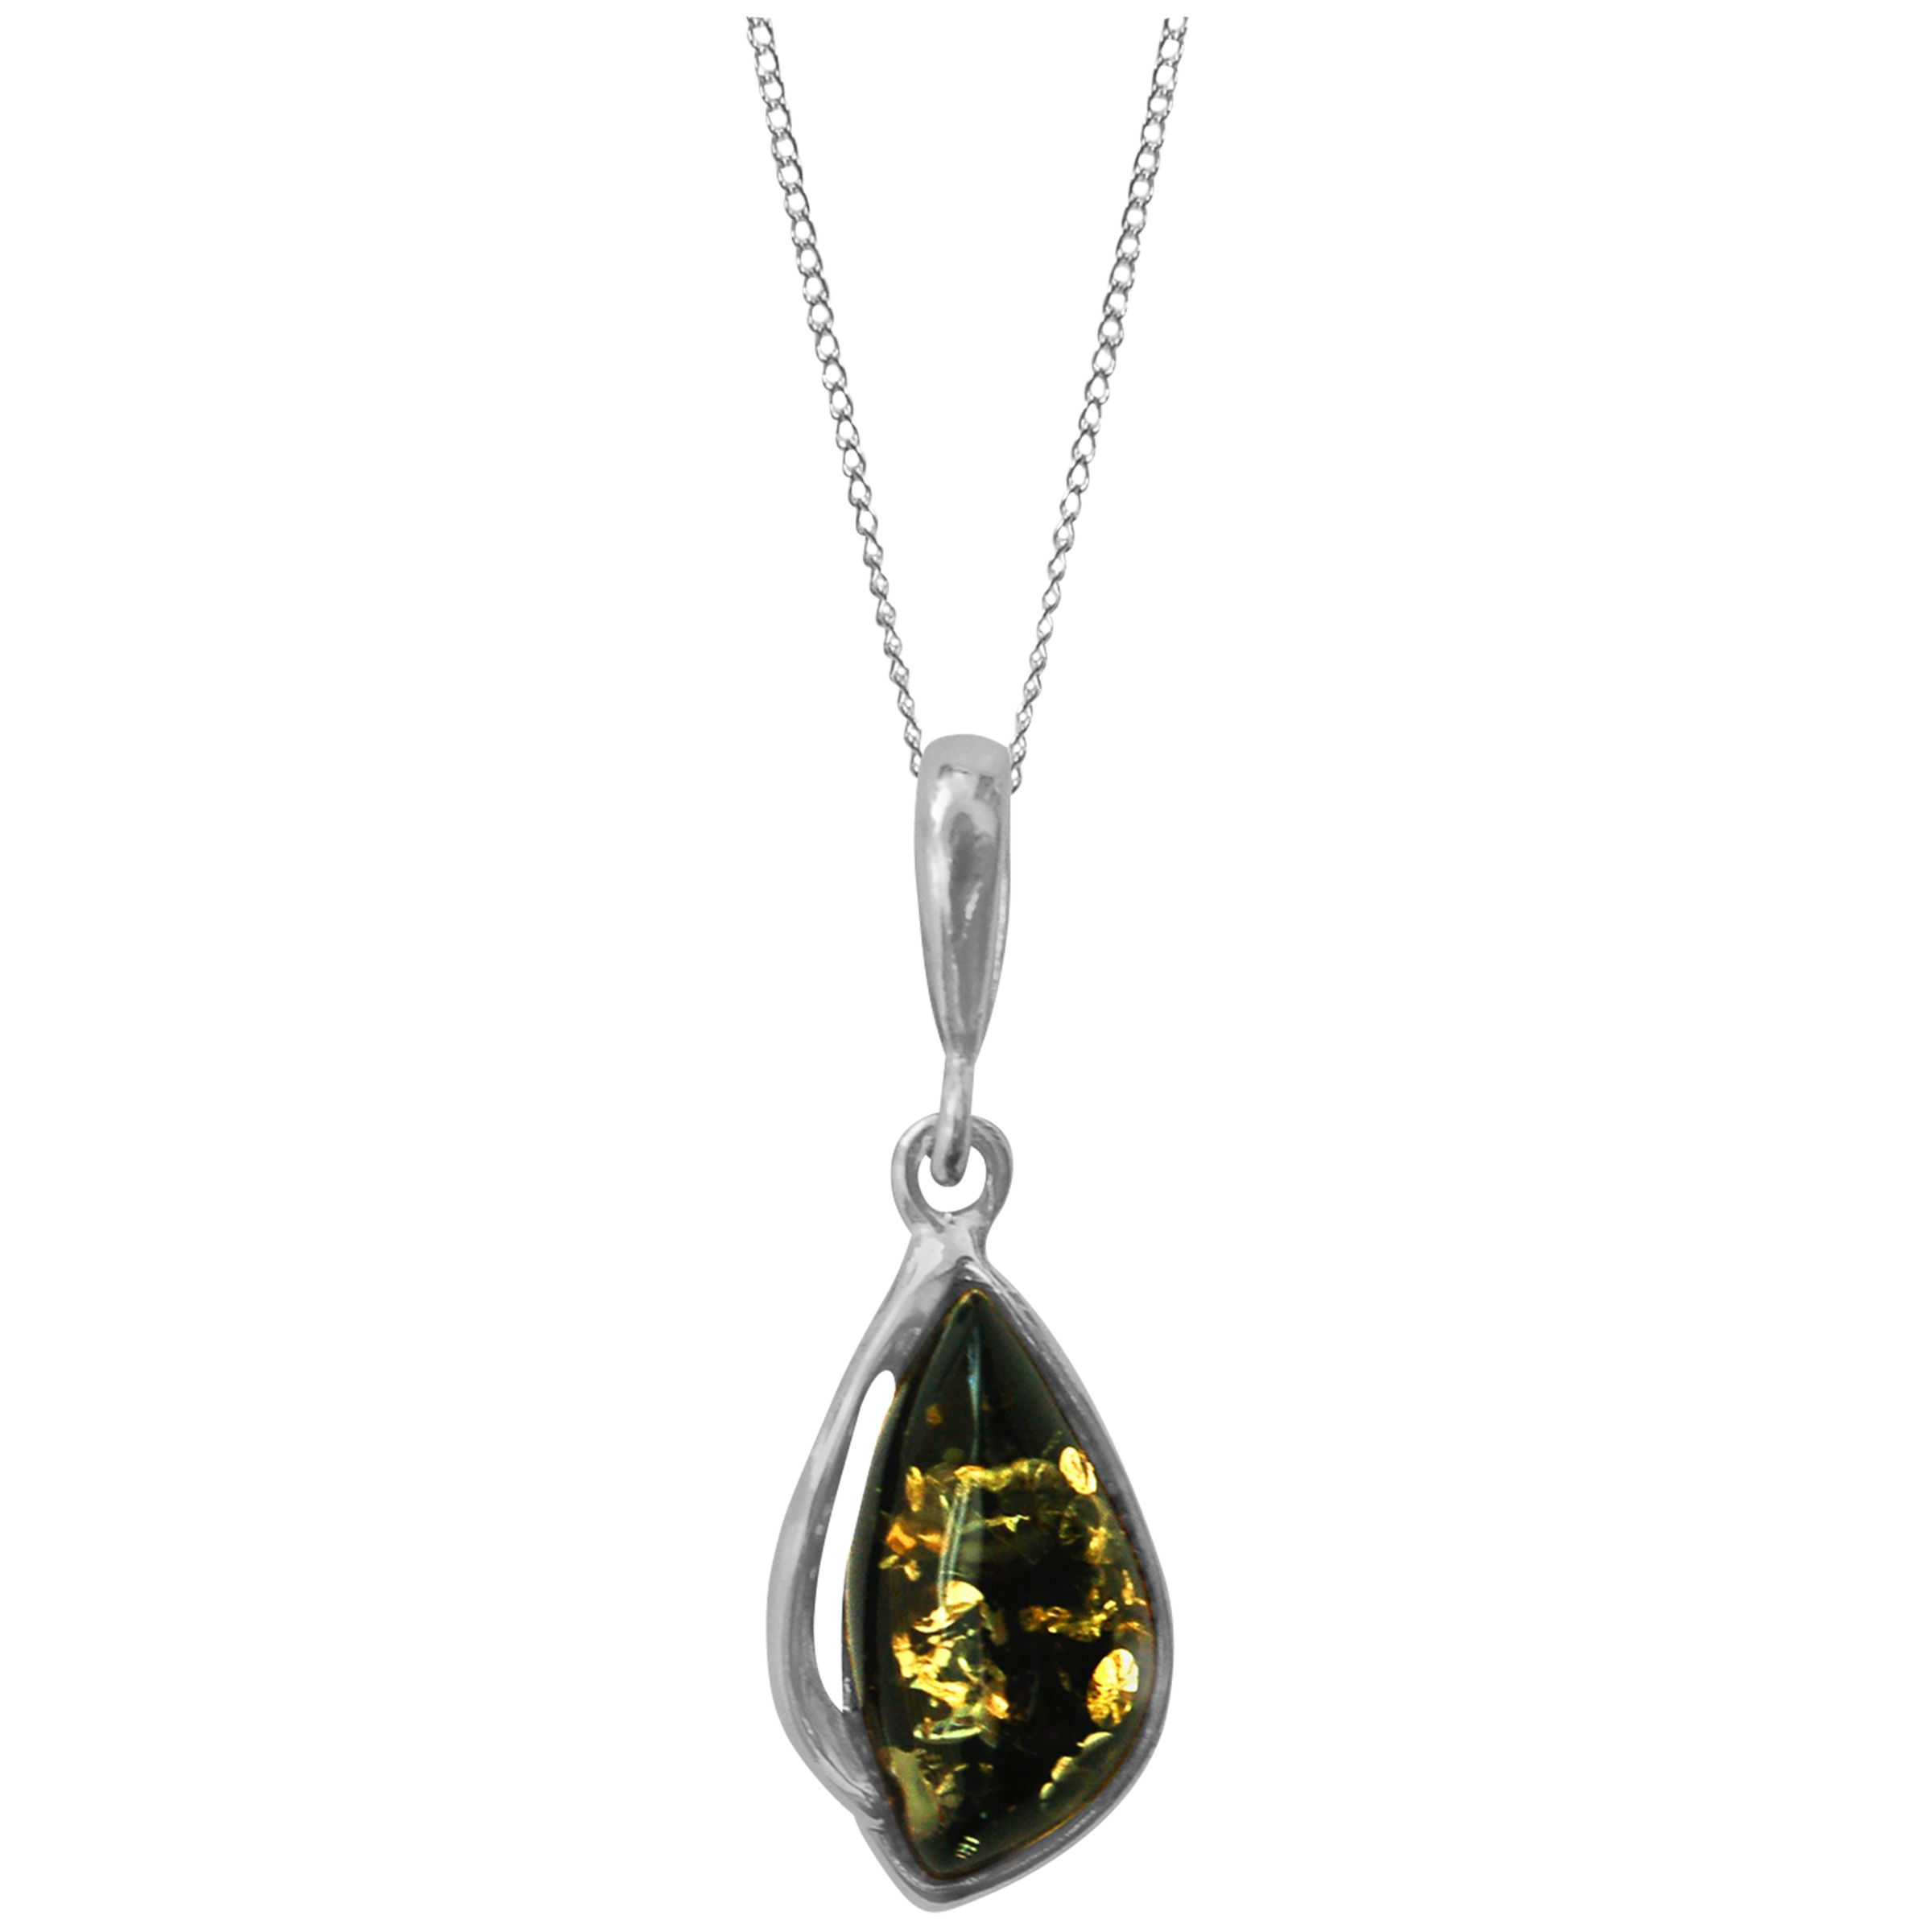 Goldmajor Goldmajor Green Amber and Sterling Silver Drop Pendant Necklace, Silver/Green